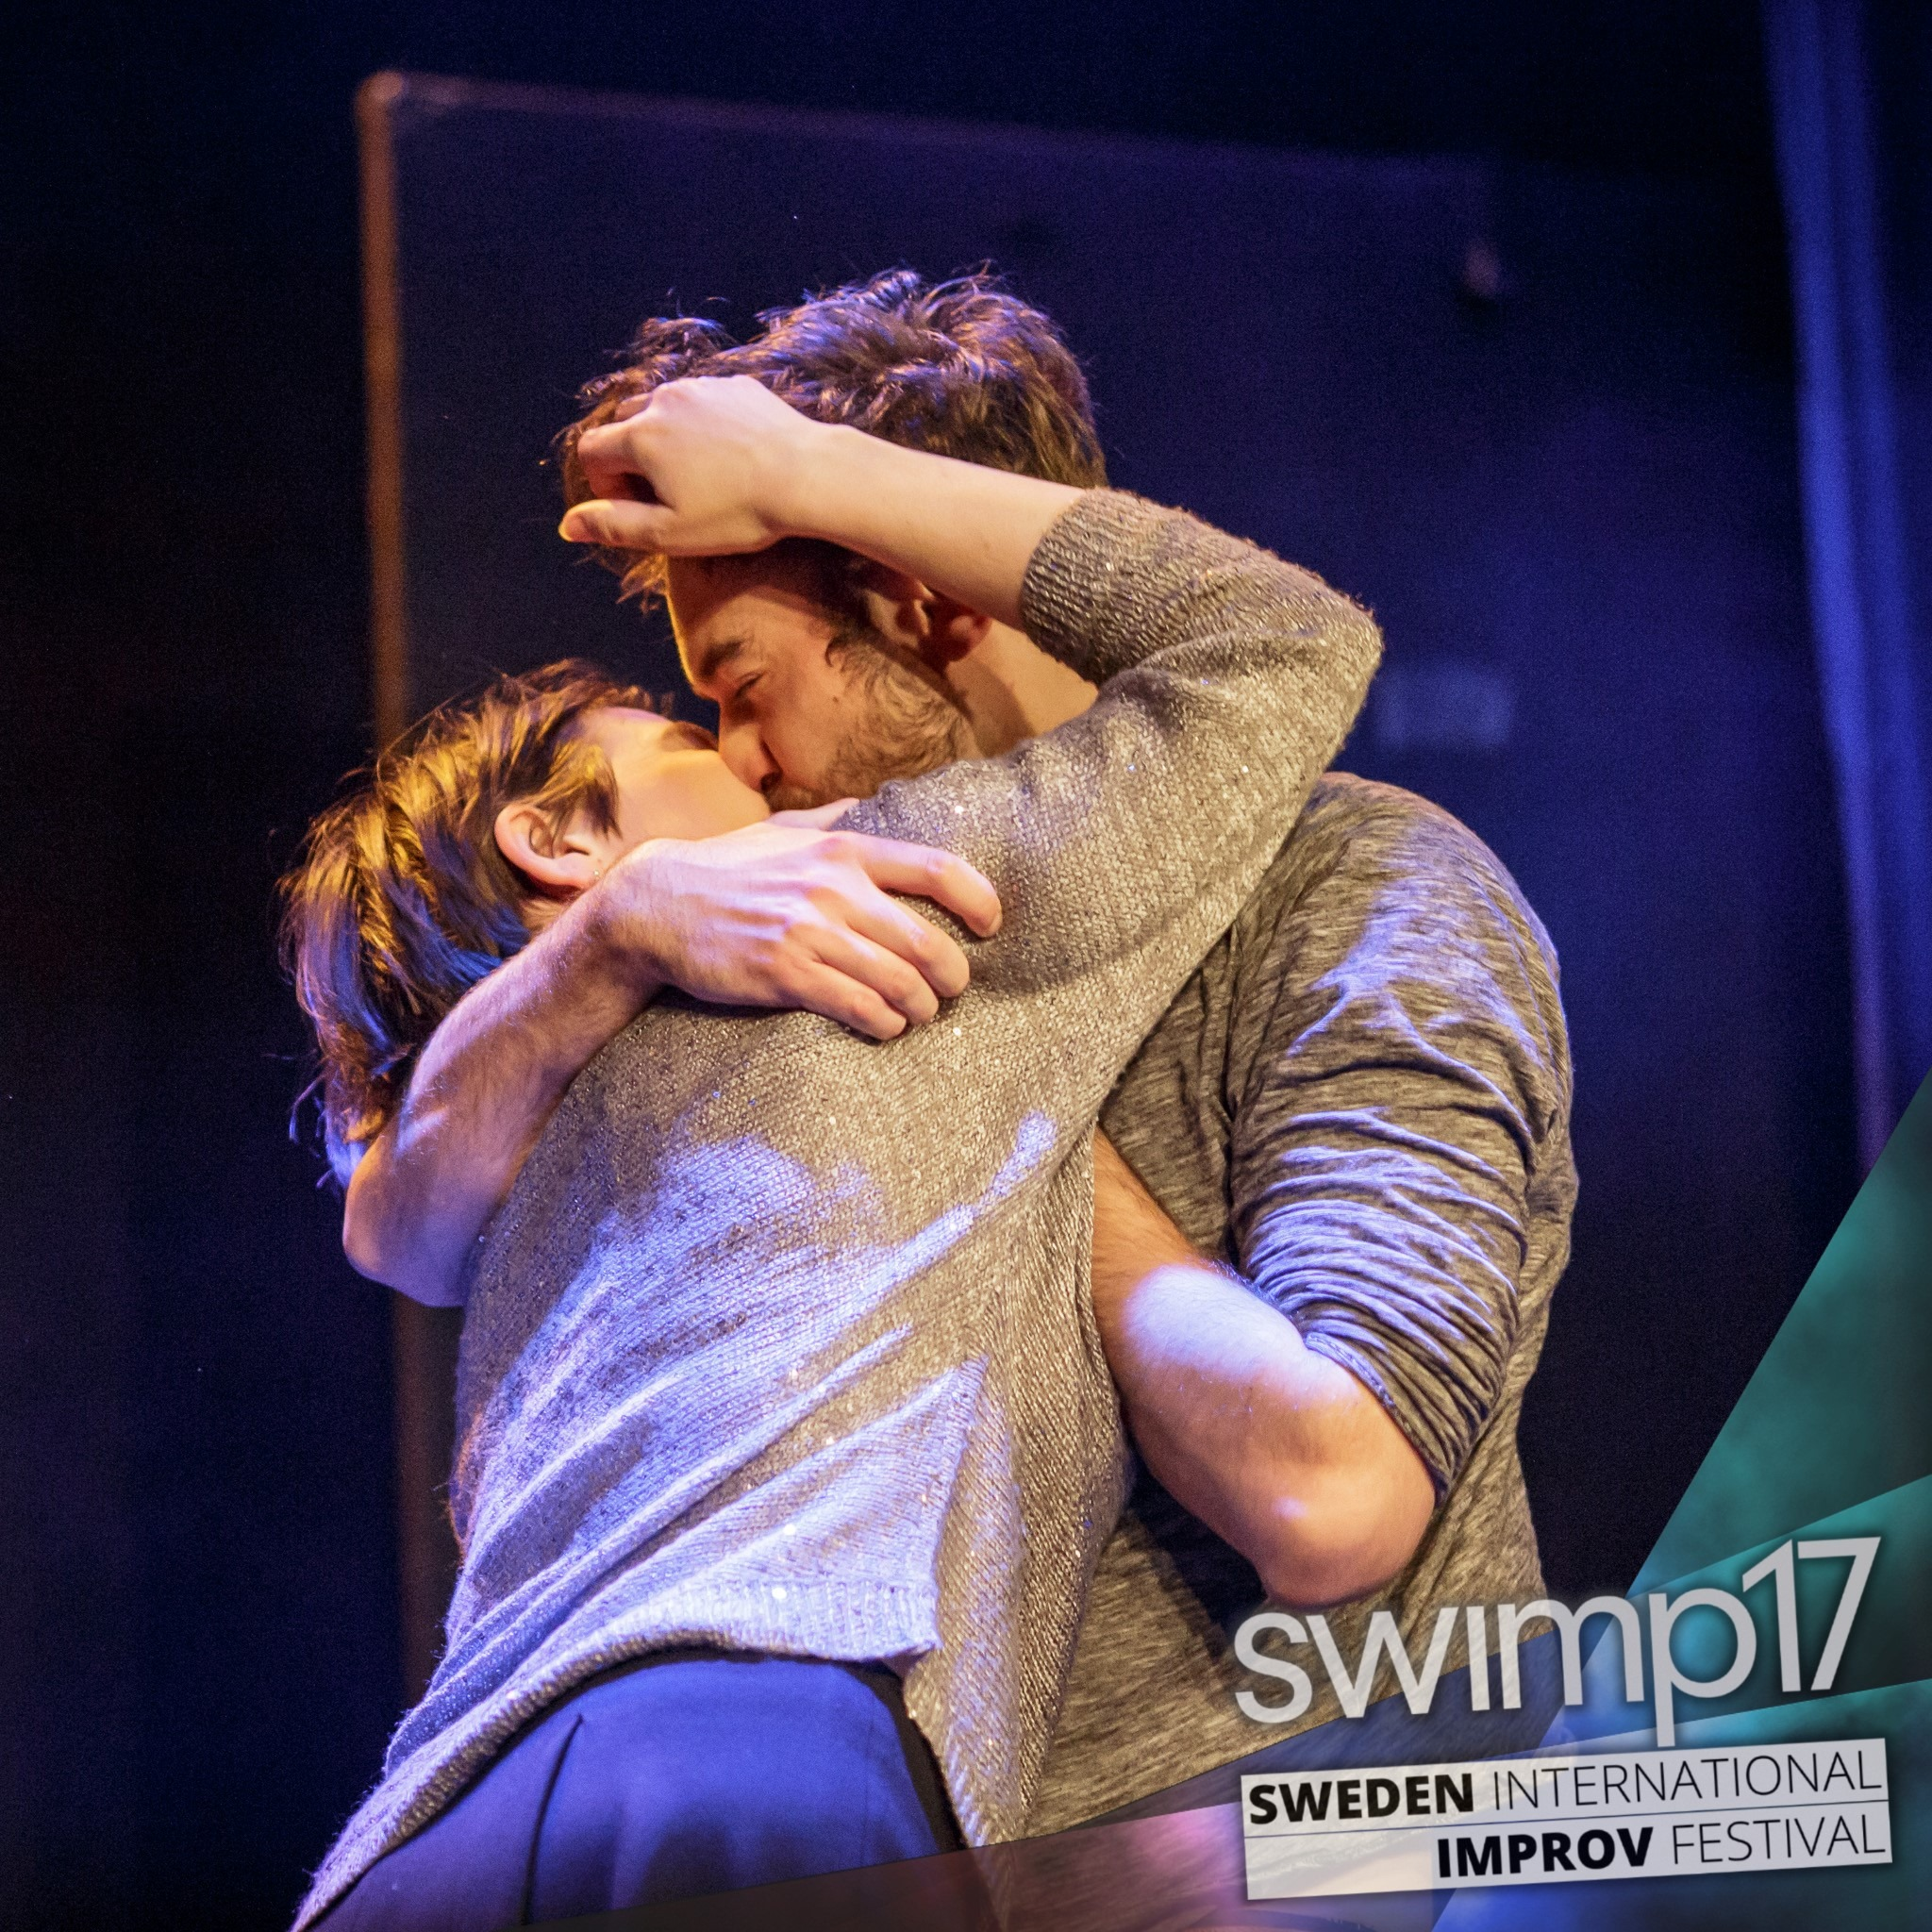 Improbanden 'Secret Confessions' at SWIMP17